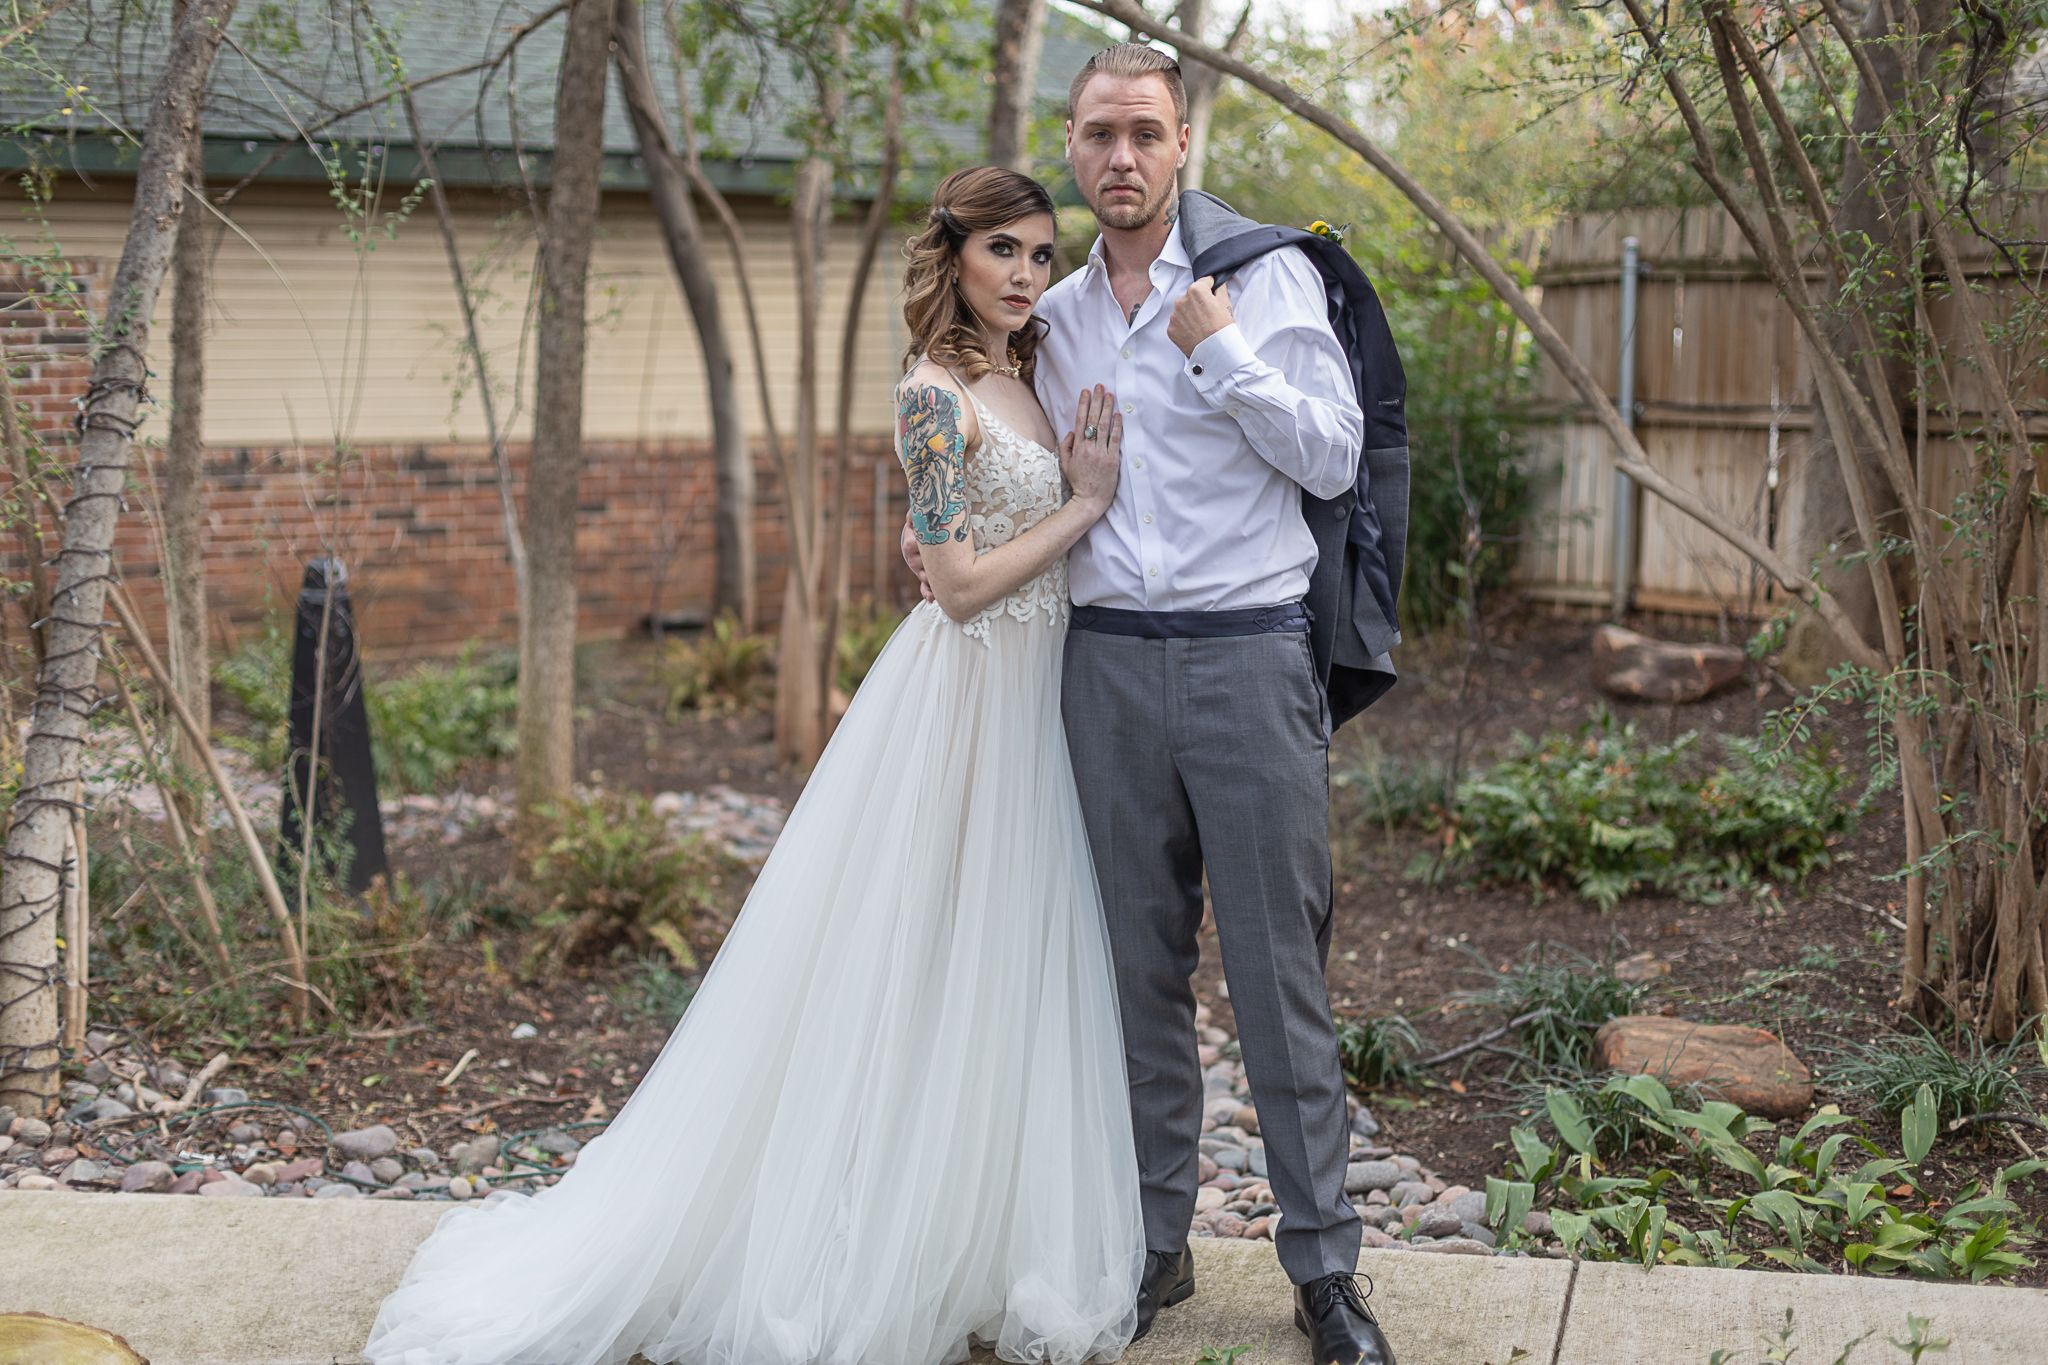 Couples | The Sandford House | Arlington, Tx